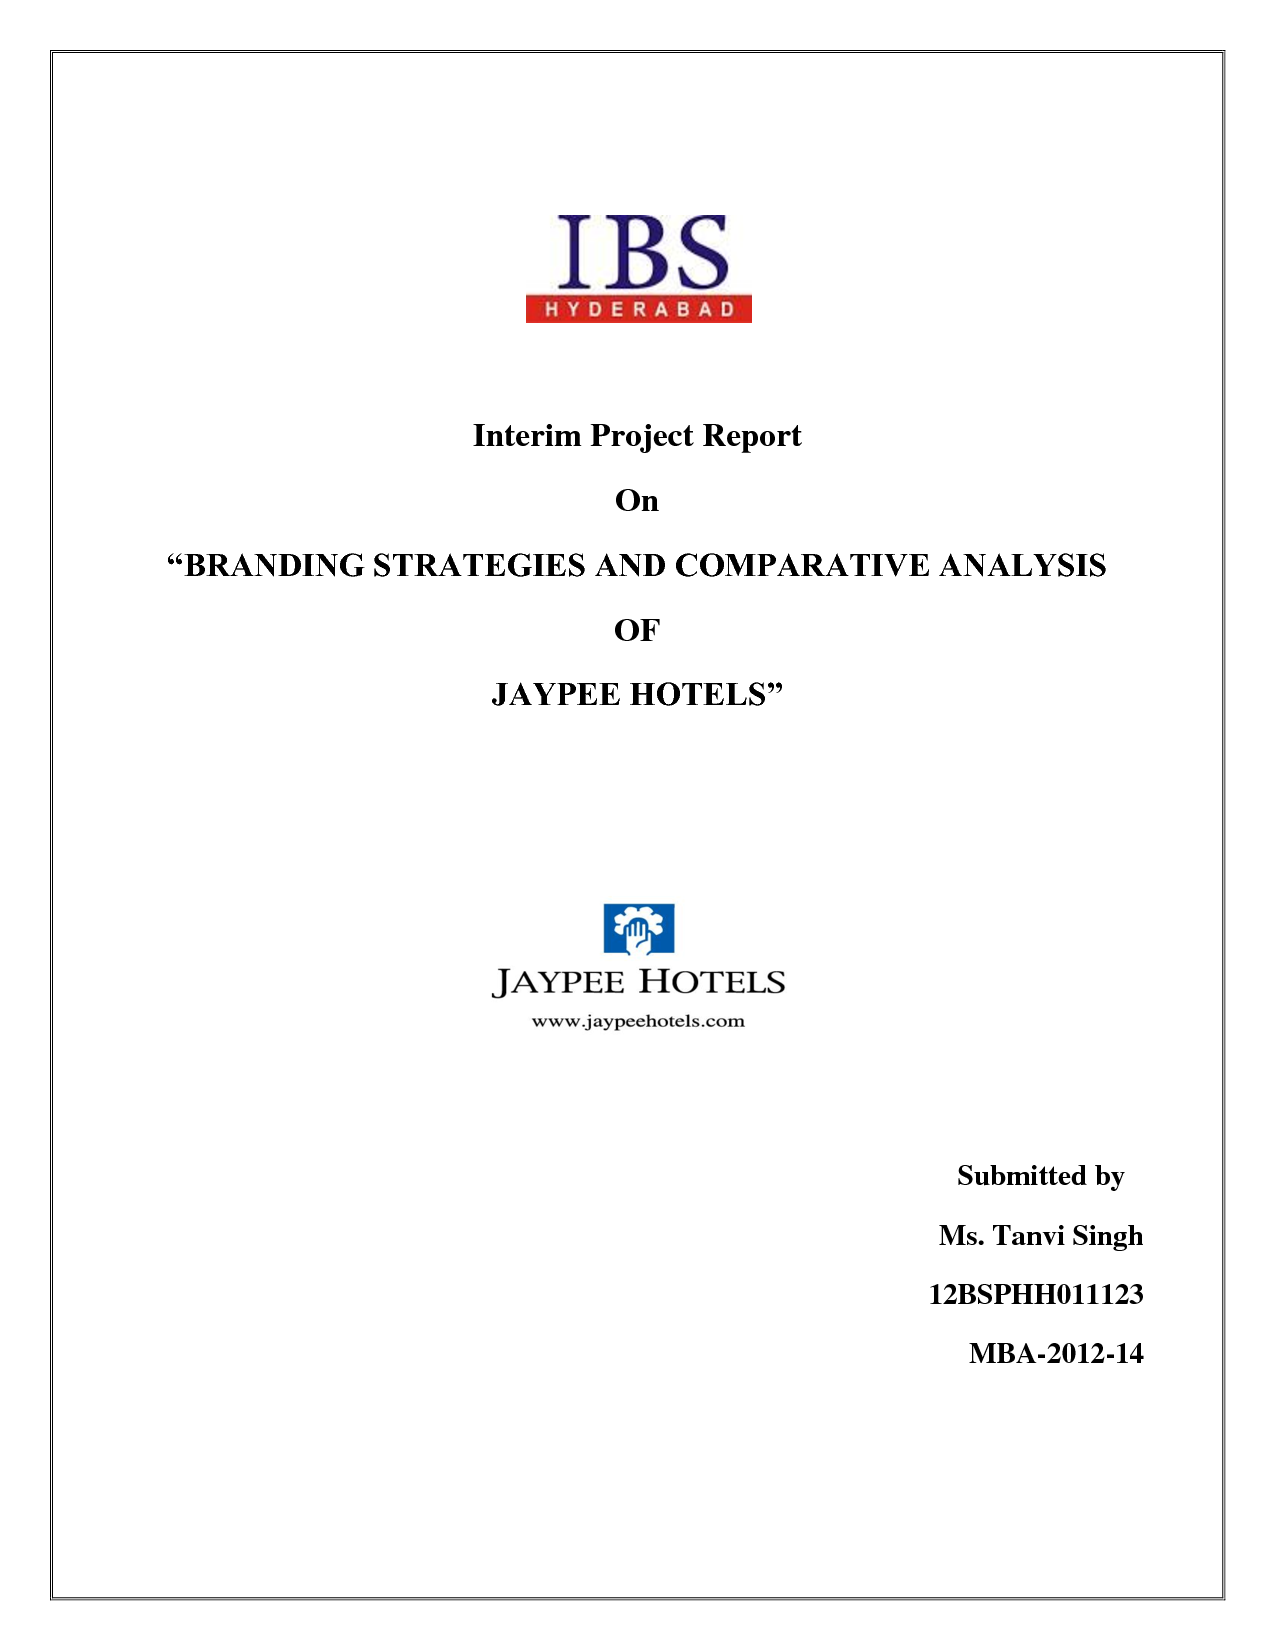 Interim evaluation report